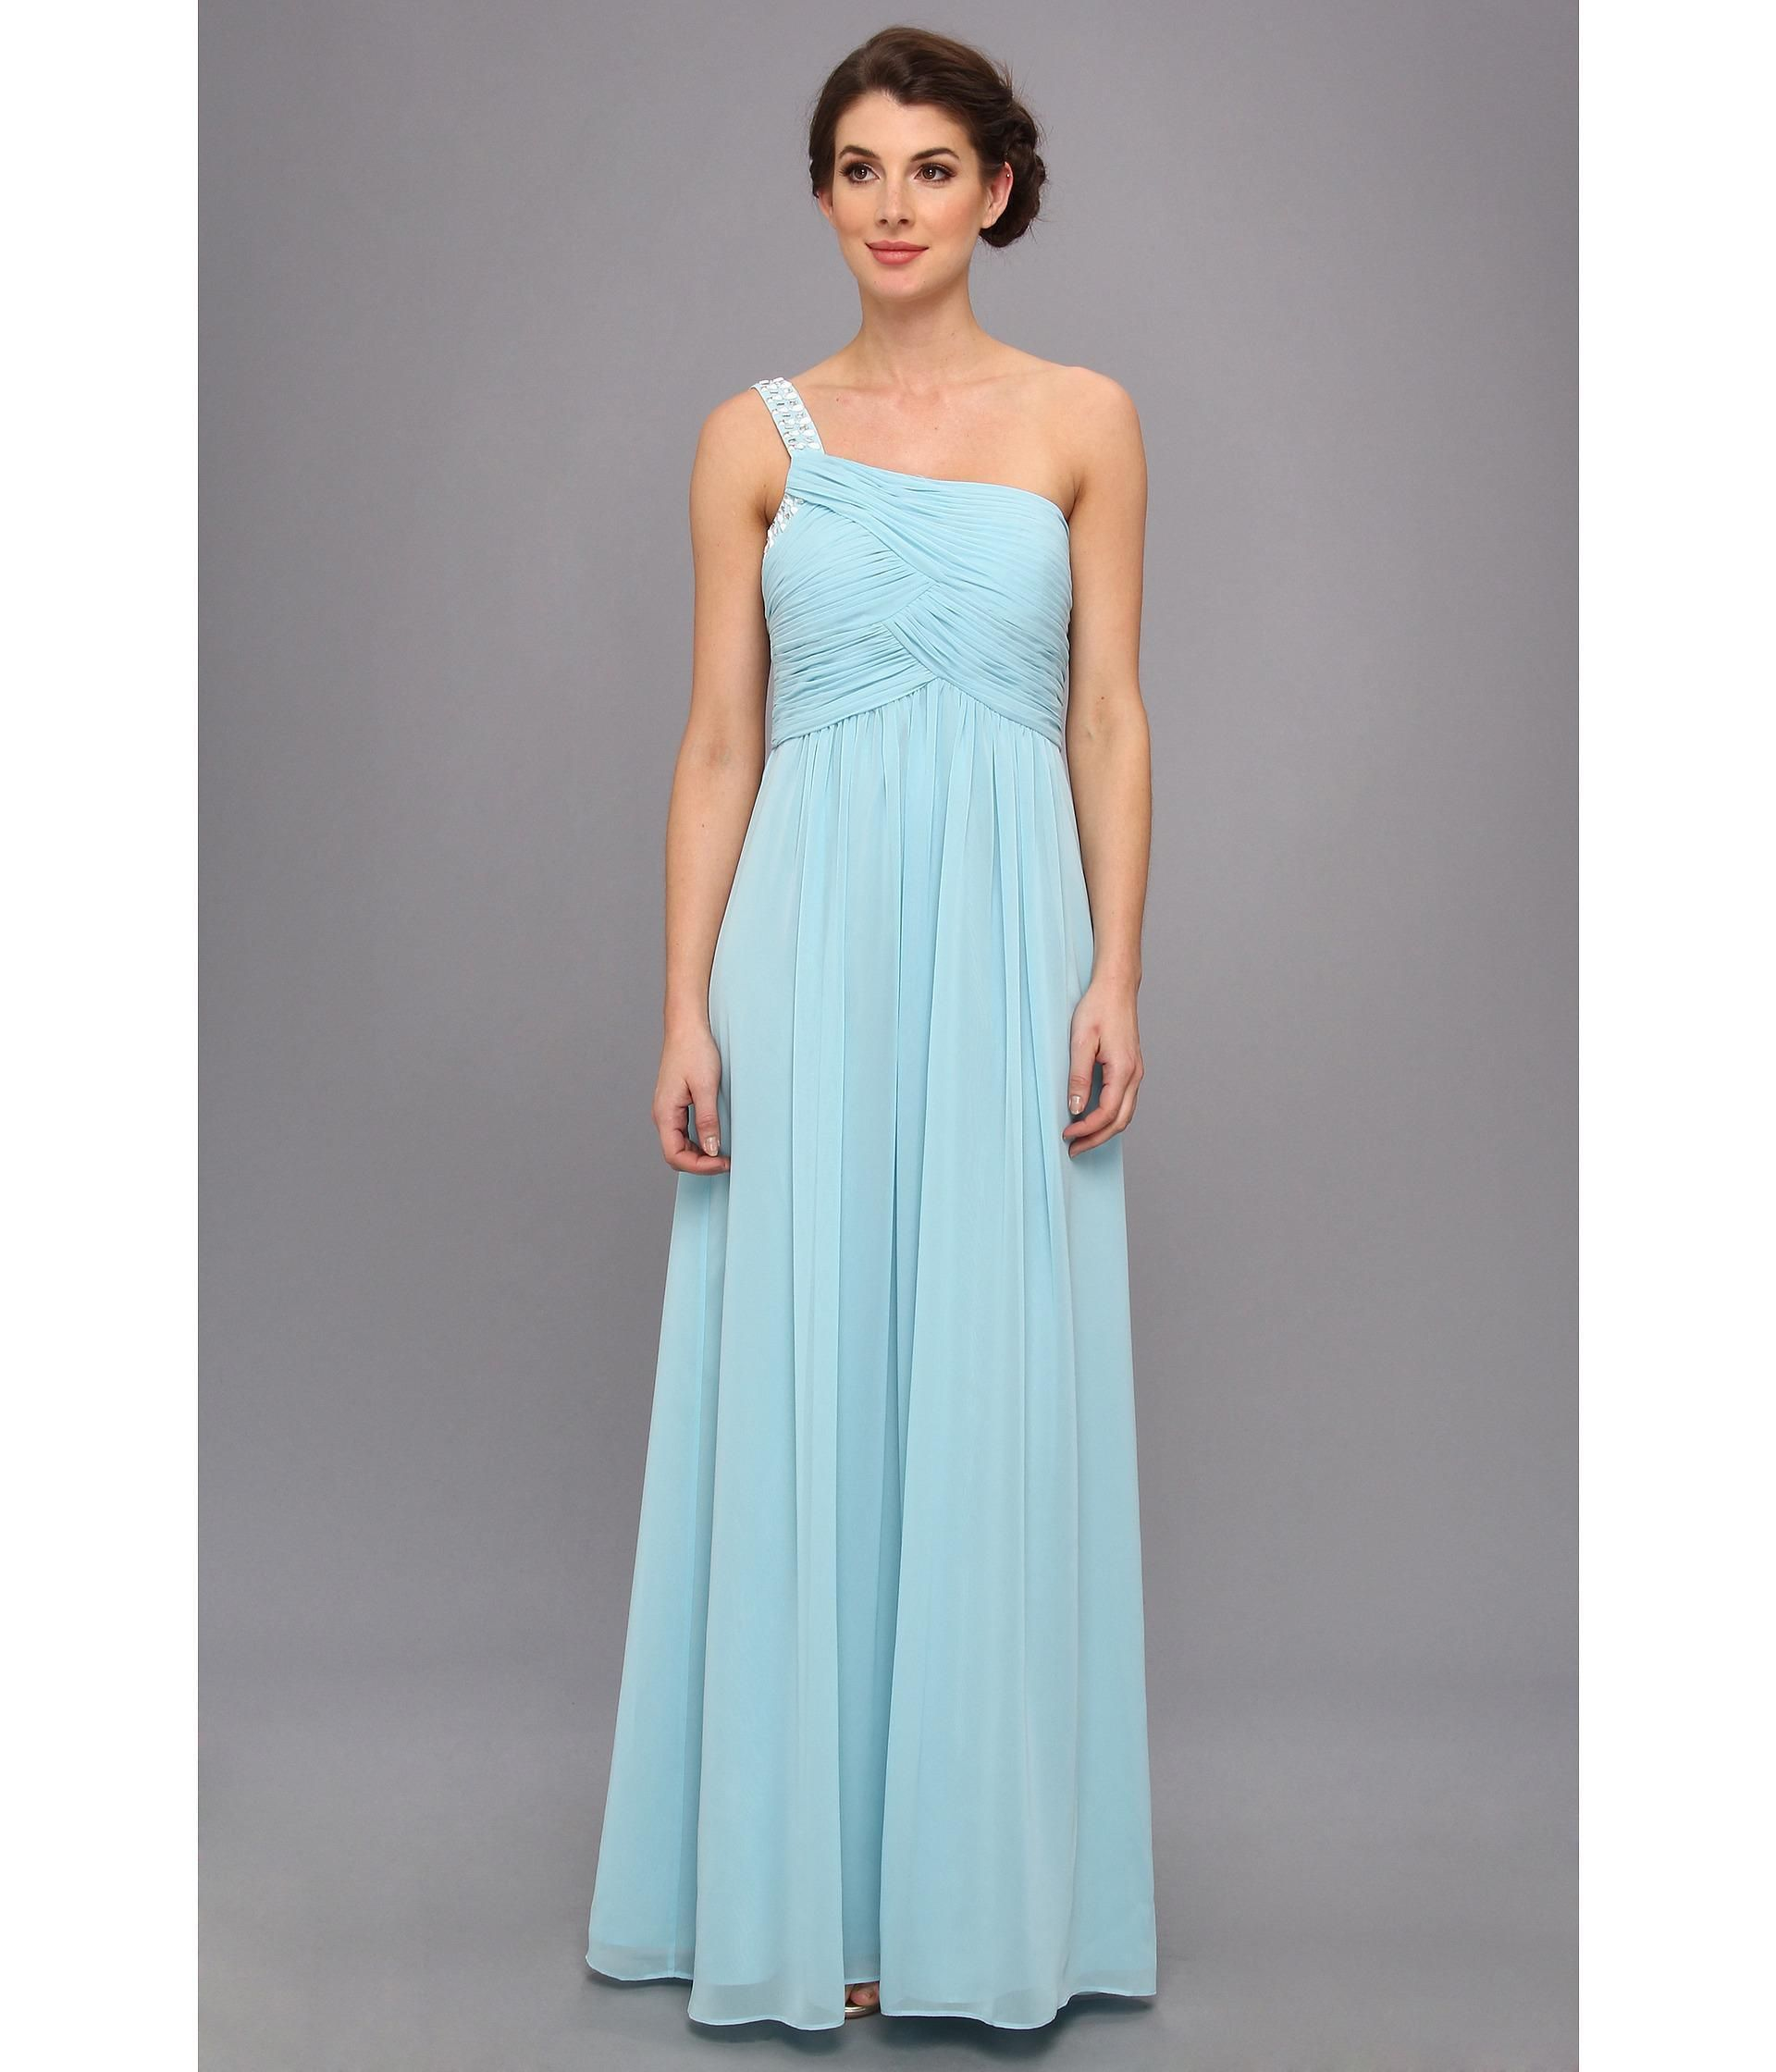 Light and airy chiffon dress with an exquisitely ruched and ...